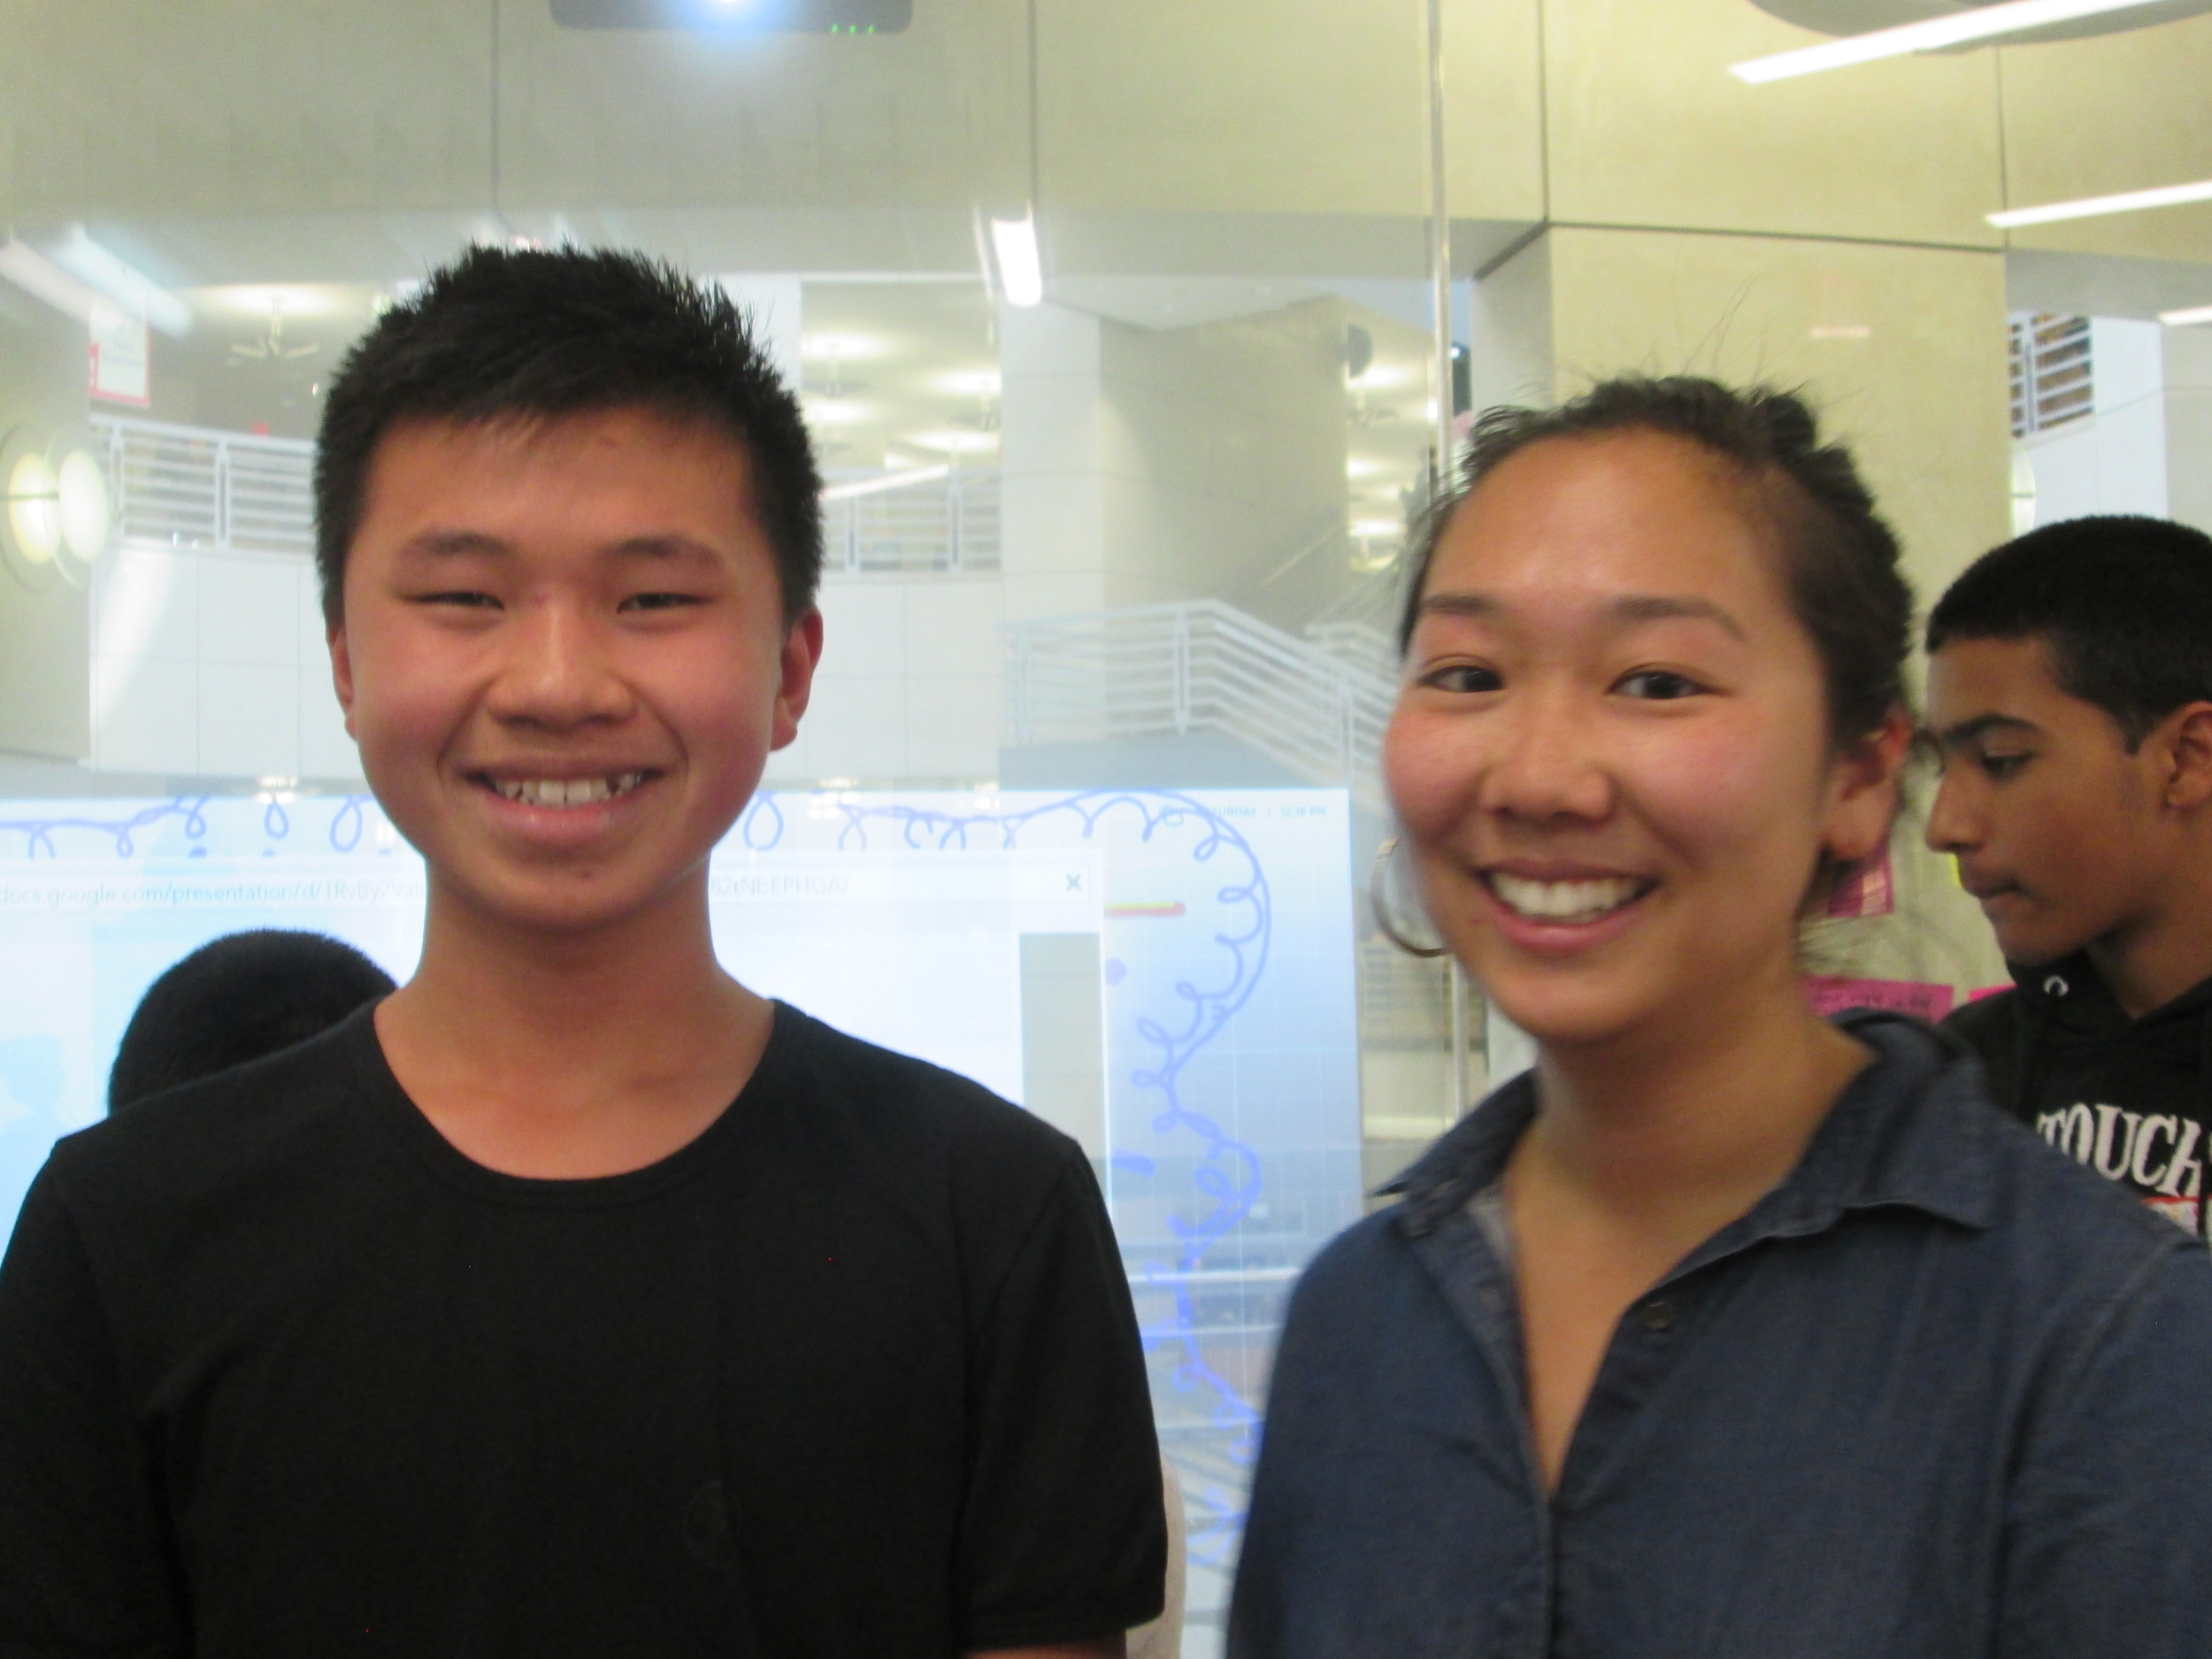 Current Lick-Wilmerding student bonding with IDEO Impact Mgr Yennie Lee, L-W alumna